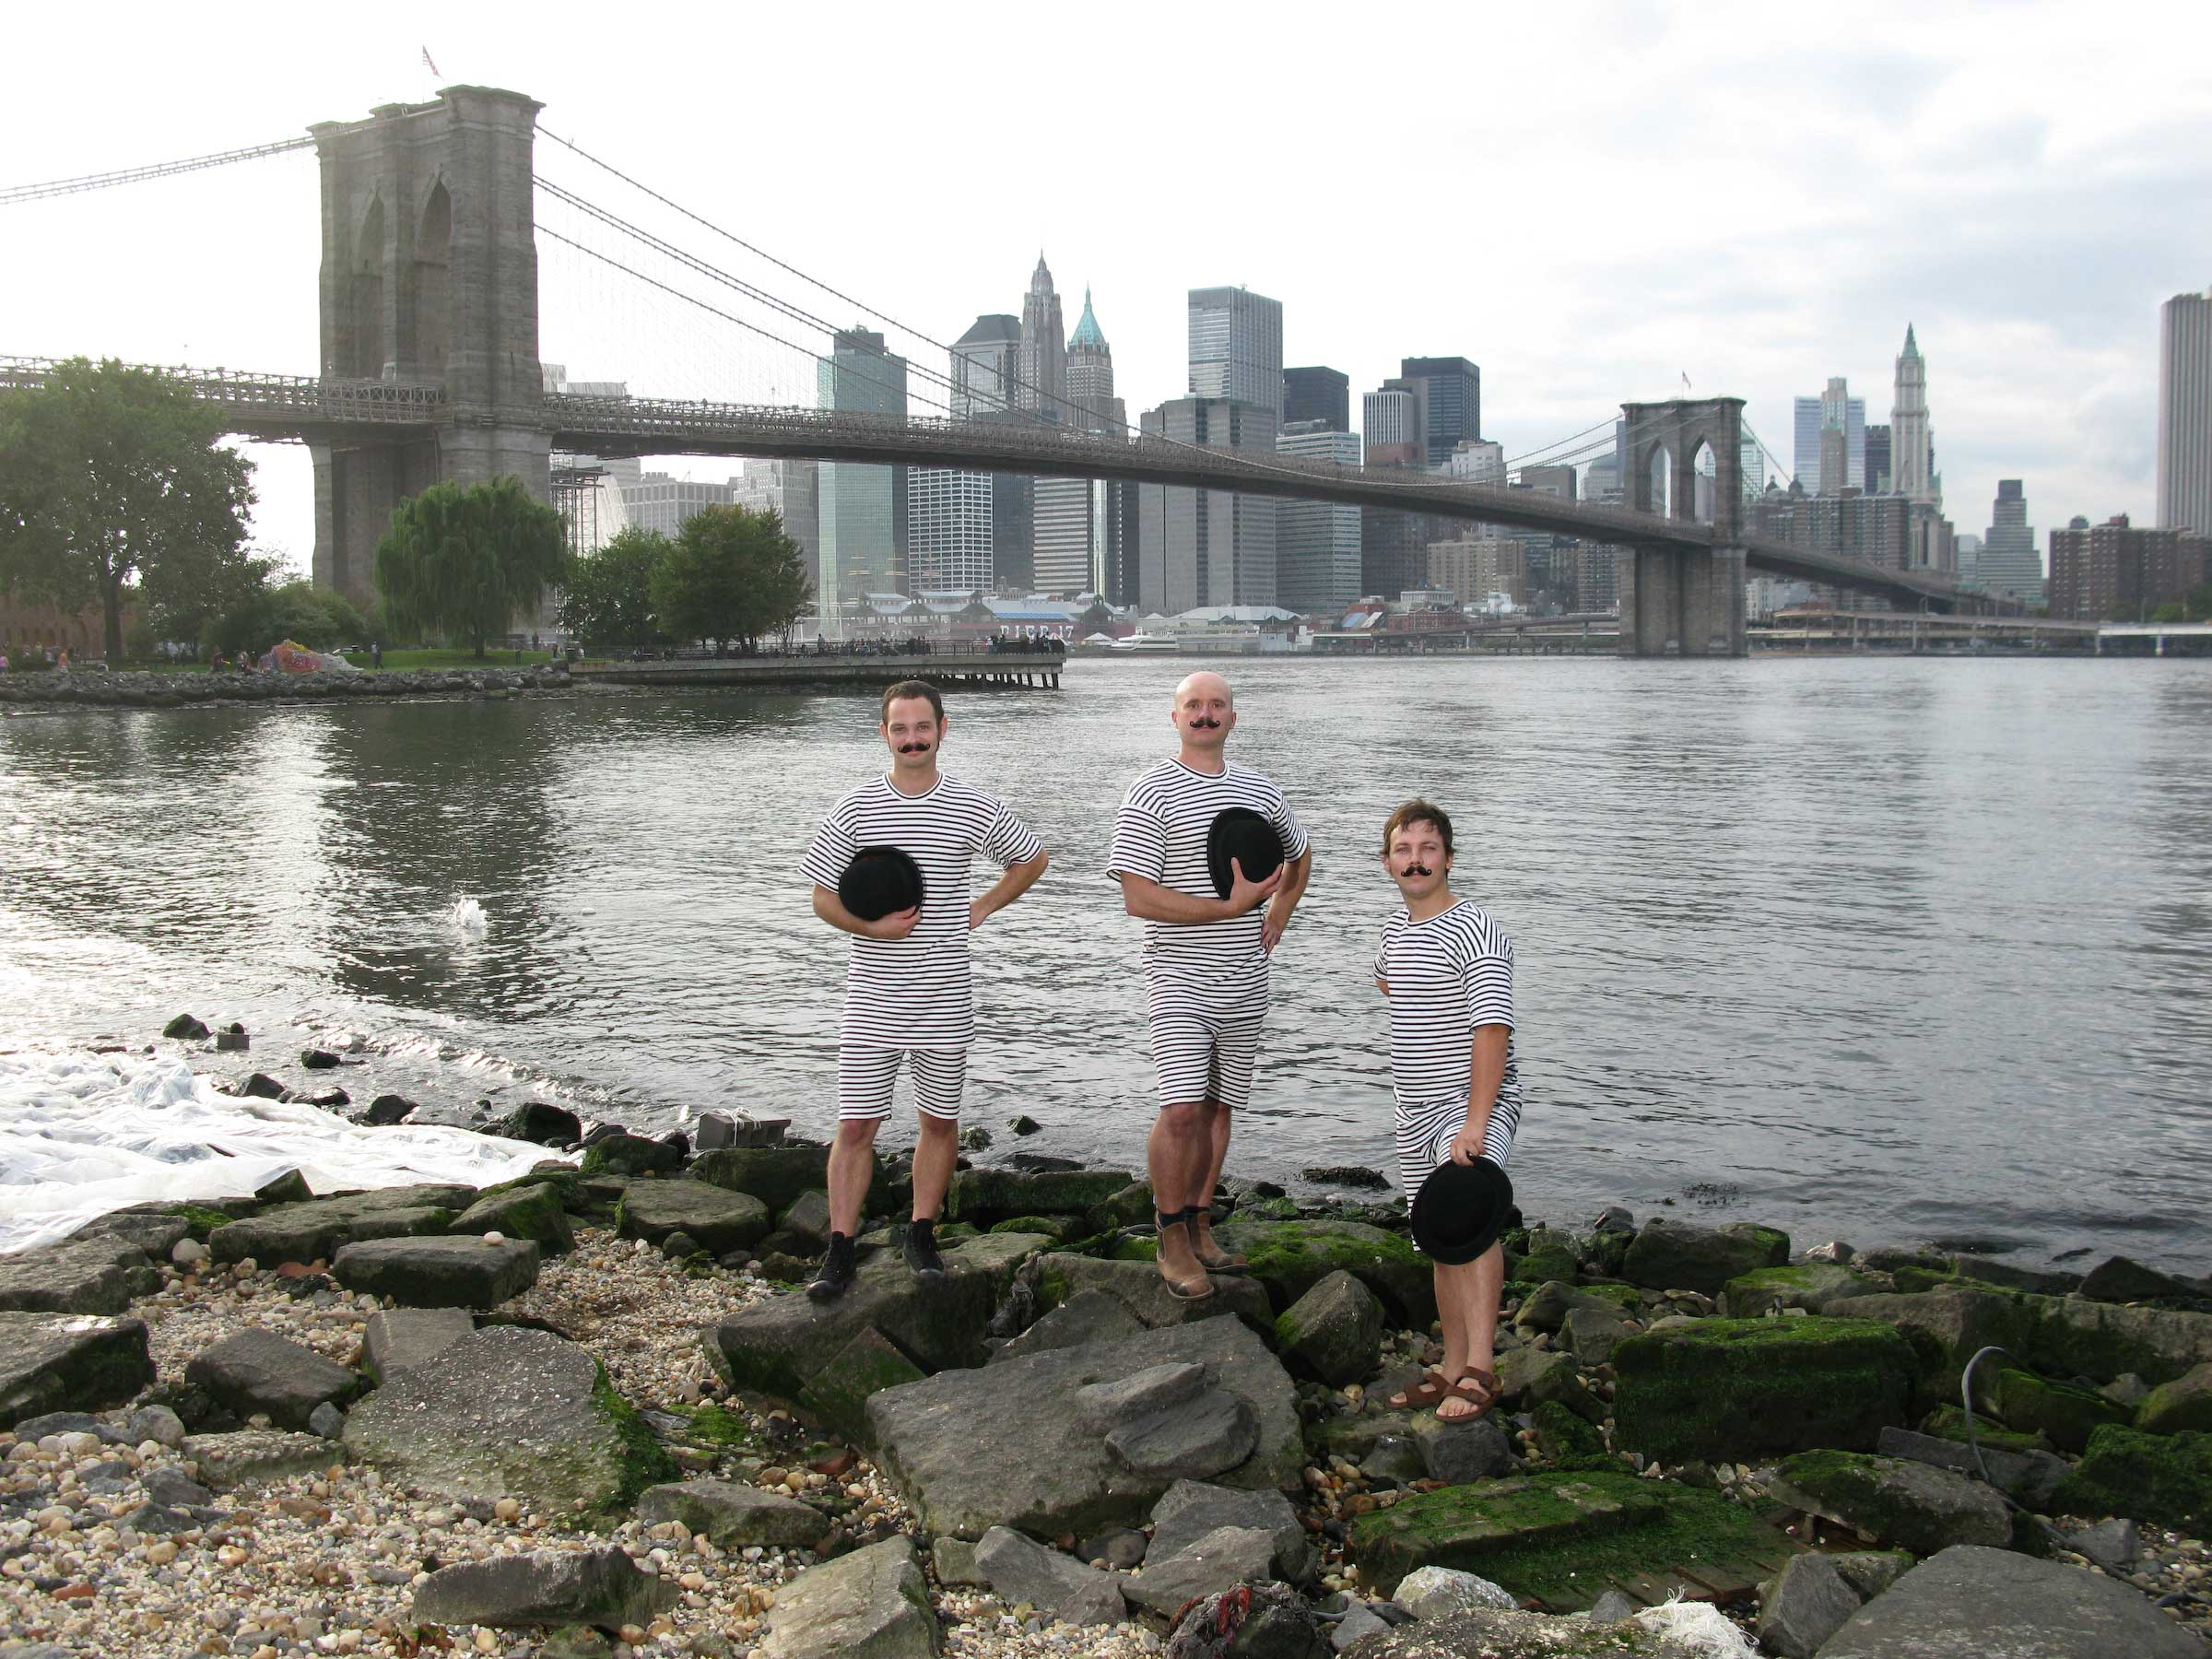 1. H2O Collective From Left to Right. Landon Jones, Patrick Visentin and Justin Parr